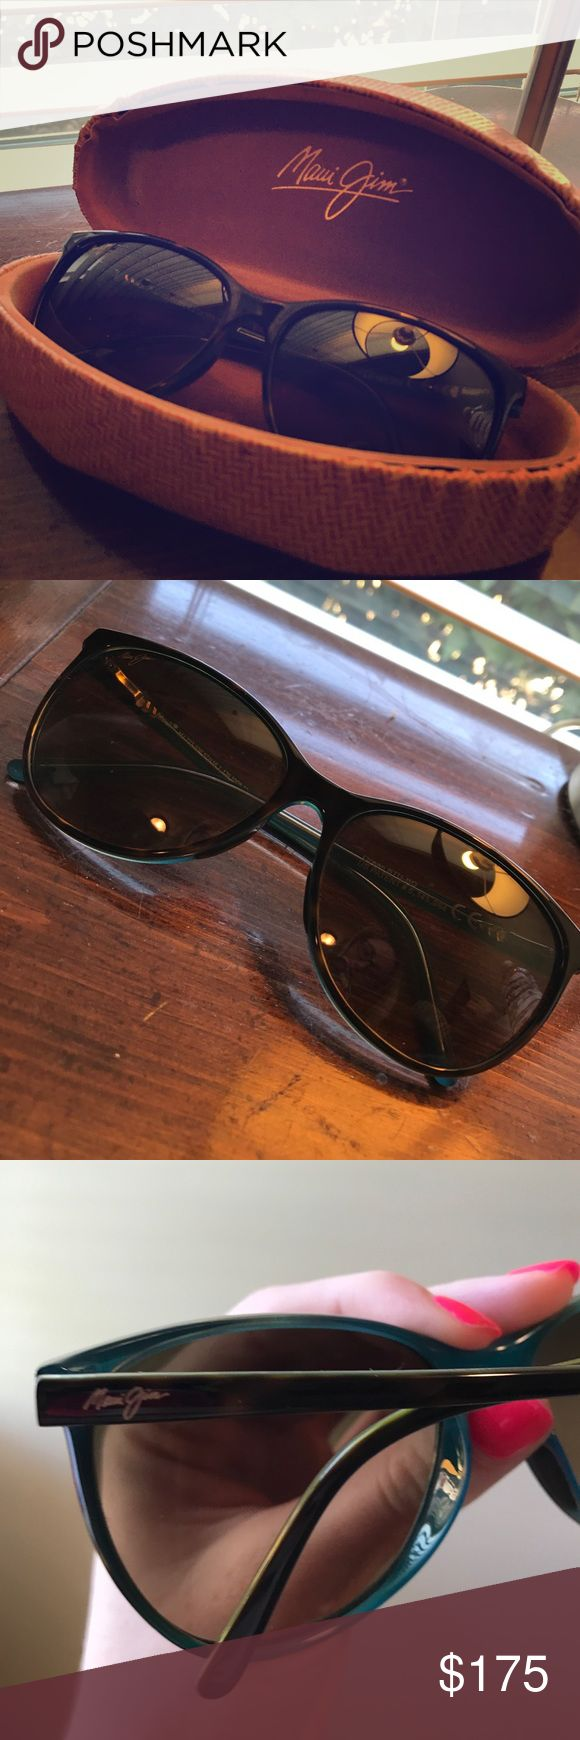 OCEAN Maui Jim sunglasses. Lightly worn. Lightly worn OCEAN Maui Jim sunglasses in tortoise on the frames and with peacock on the inside of frames. Great condition. Highly rated sunglasses! Maui Jim Accessories Glasses